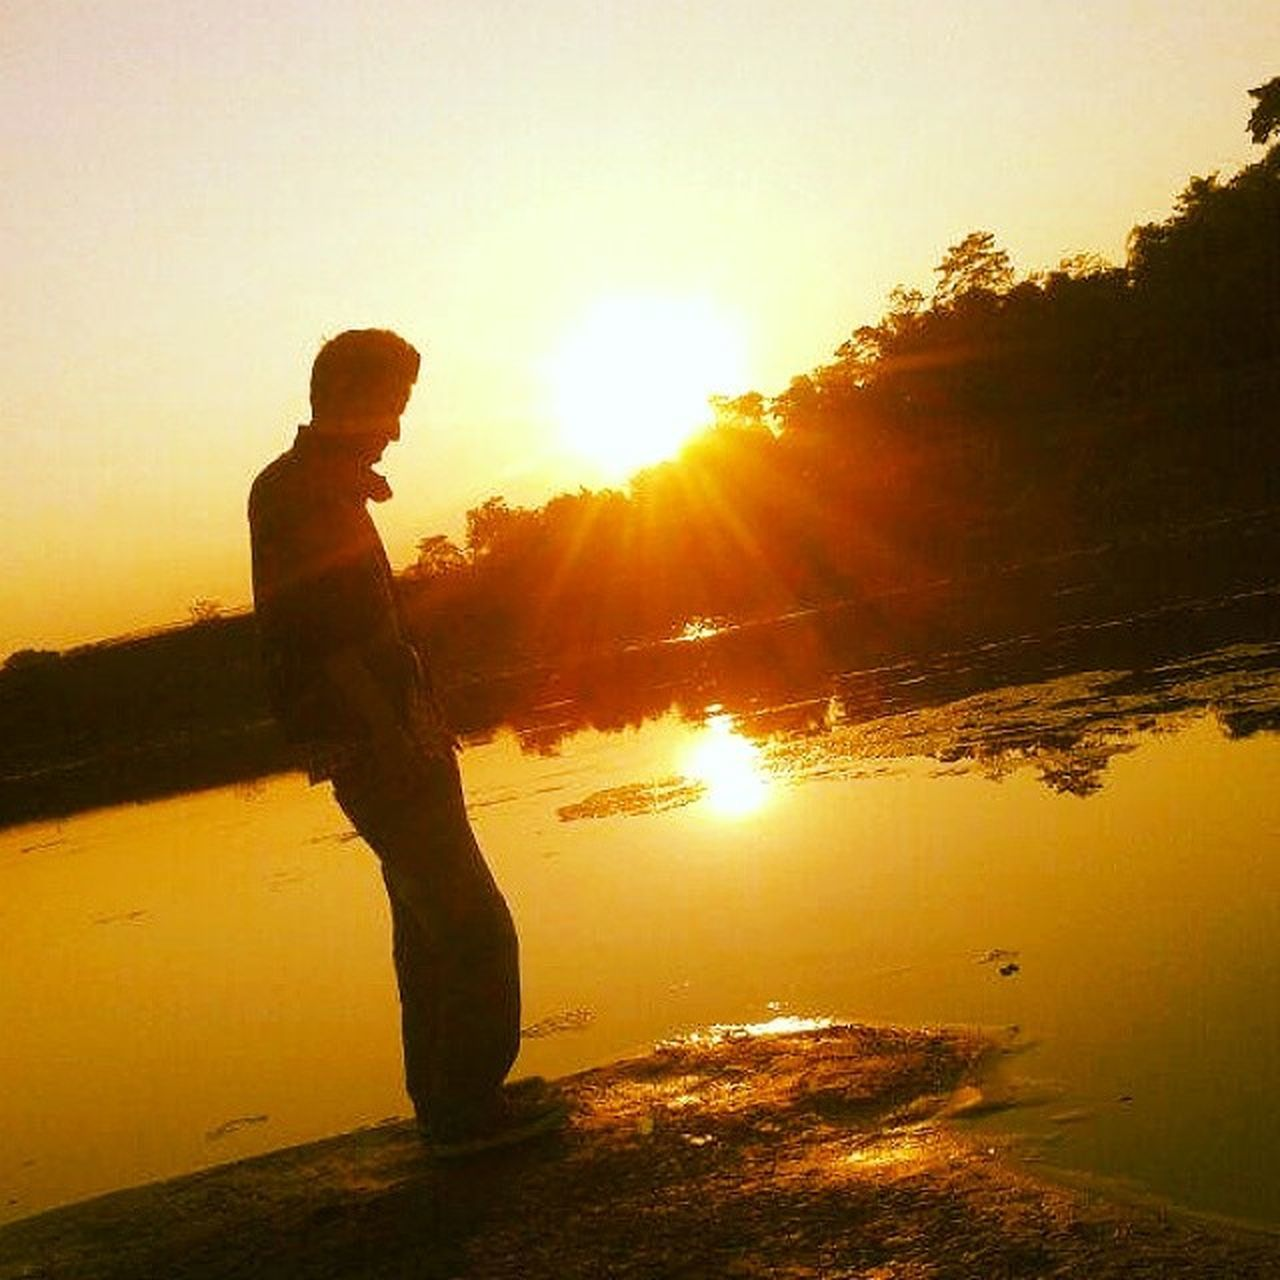 sunset, lens flare, sunlight, silhouette, one person, back lit, sunbeam, sun, one man only, nature, standing, only men, adult, adults only, people, morning, reflection, outdoors, men, lake, tree, side view, water, full length, sky, forest, sport, vacations, young adult, scenics, beauty in nature, day